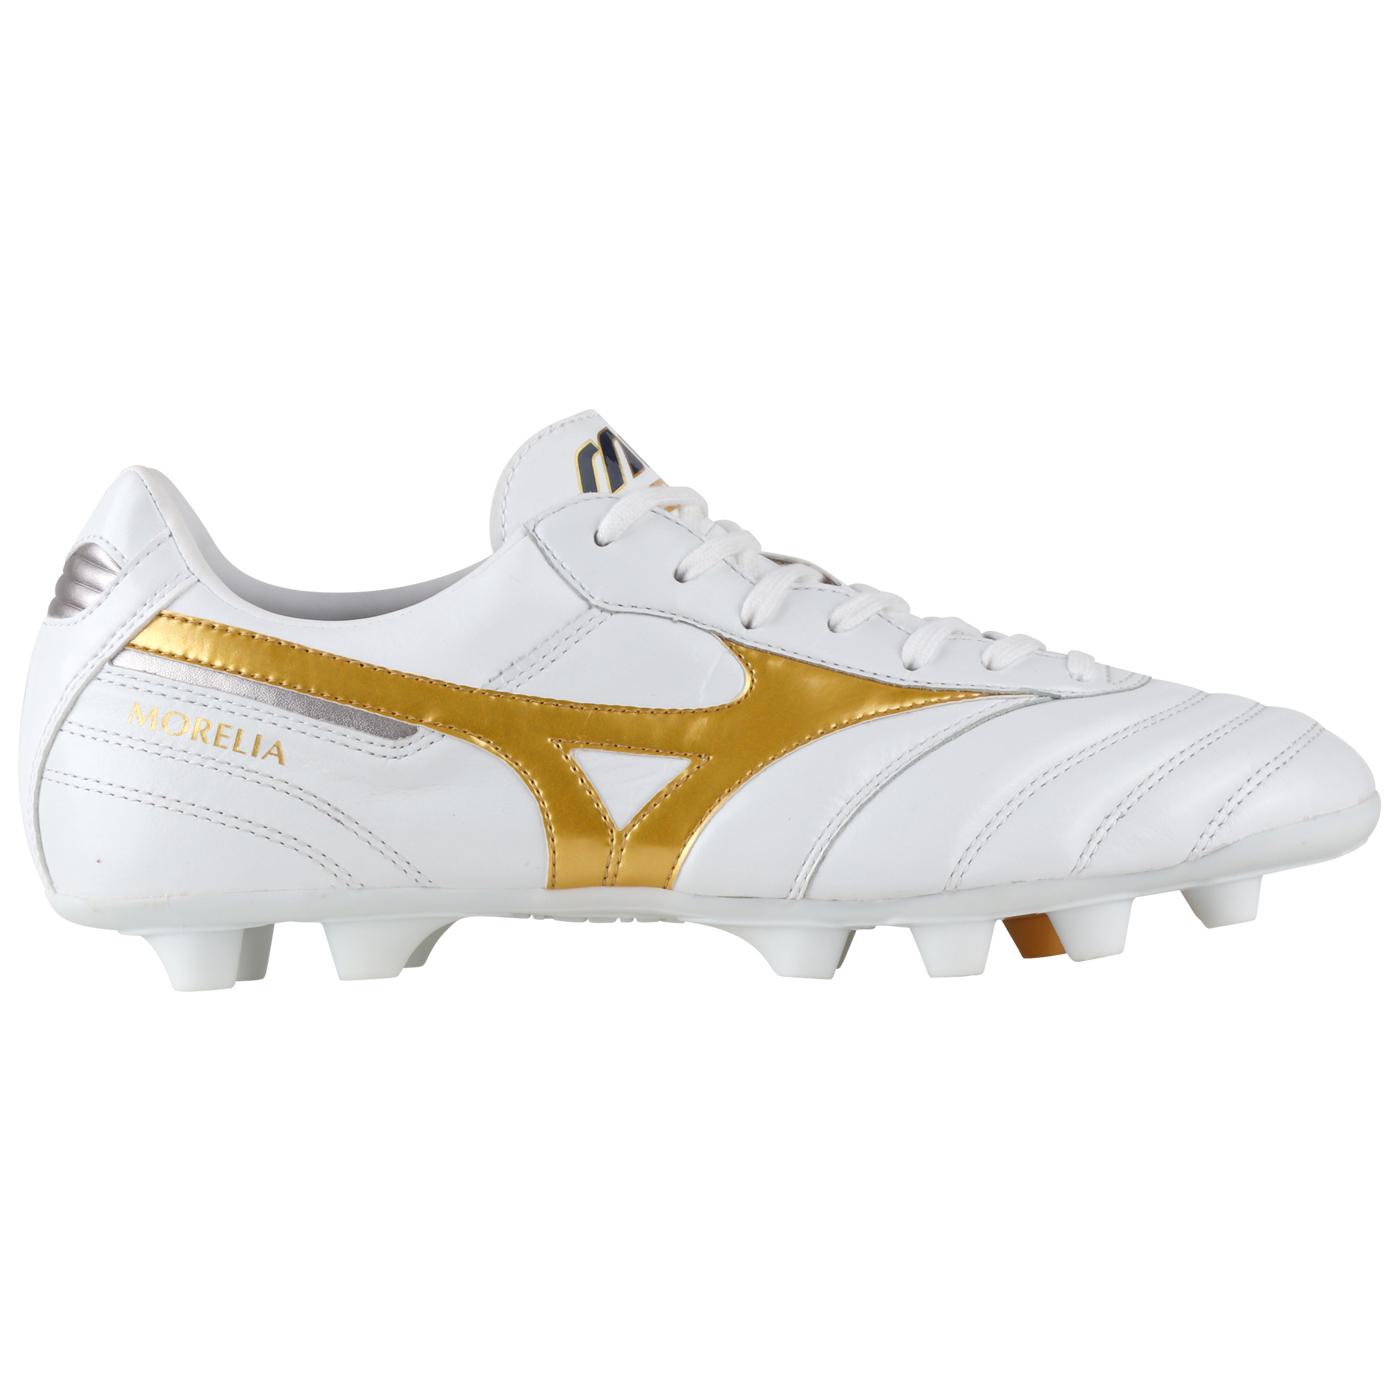 MORELIA II ELITE - WHITE/GOLD/